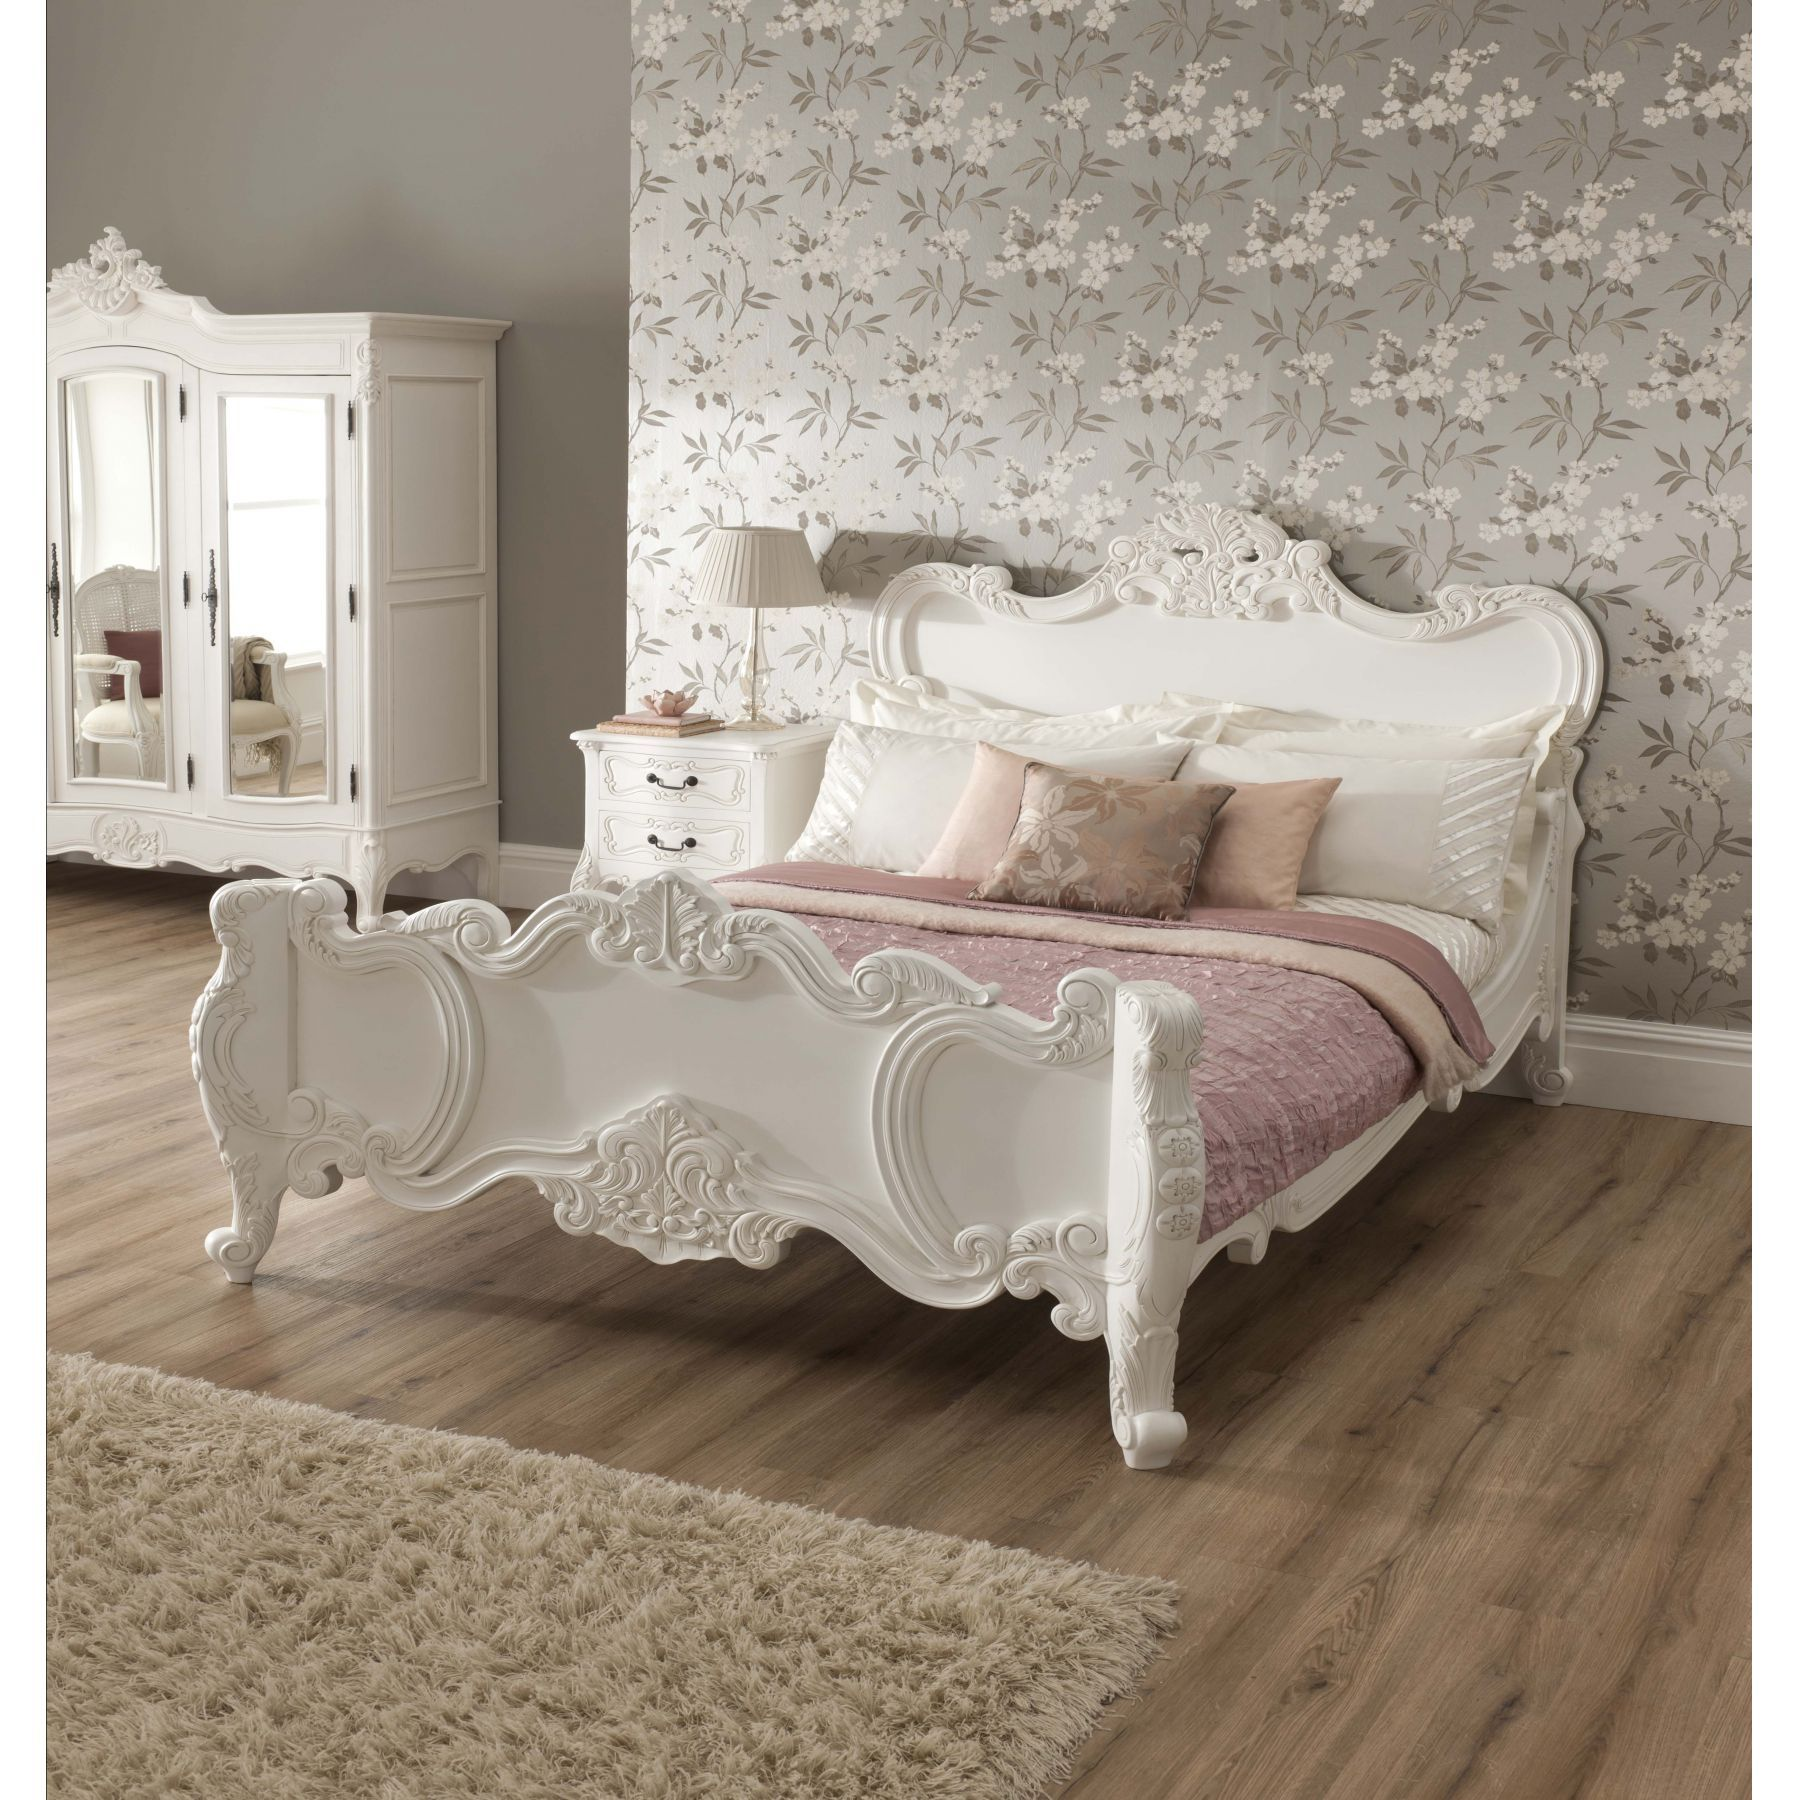 Shabby chic attic bedroom ideas for the house for Classic french beds